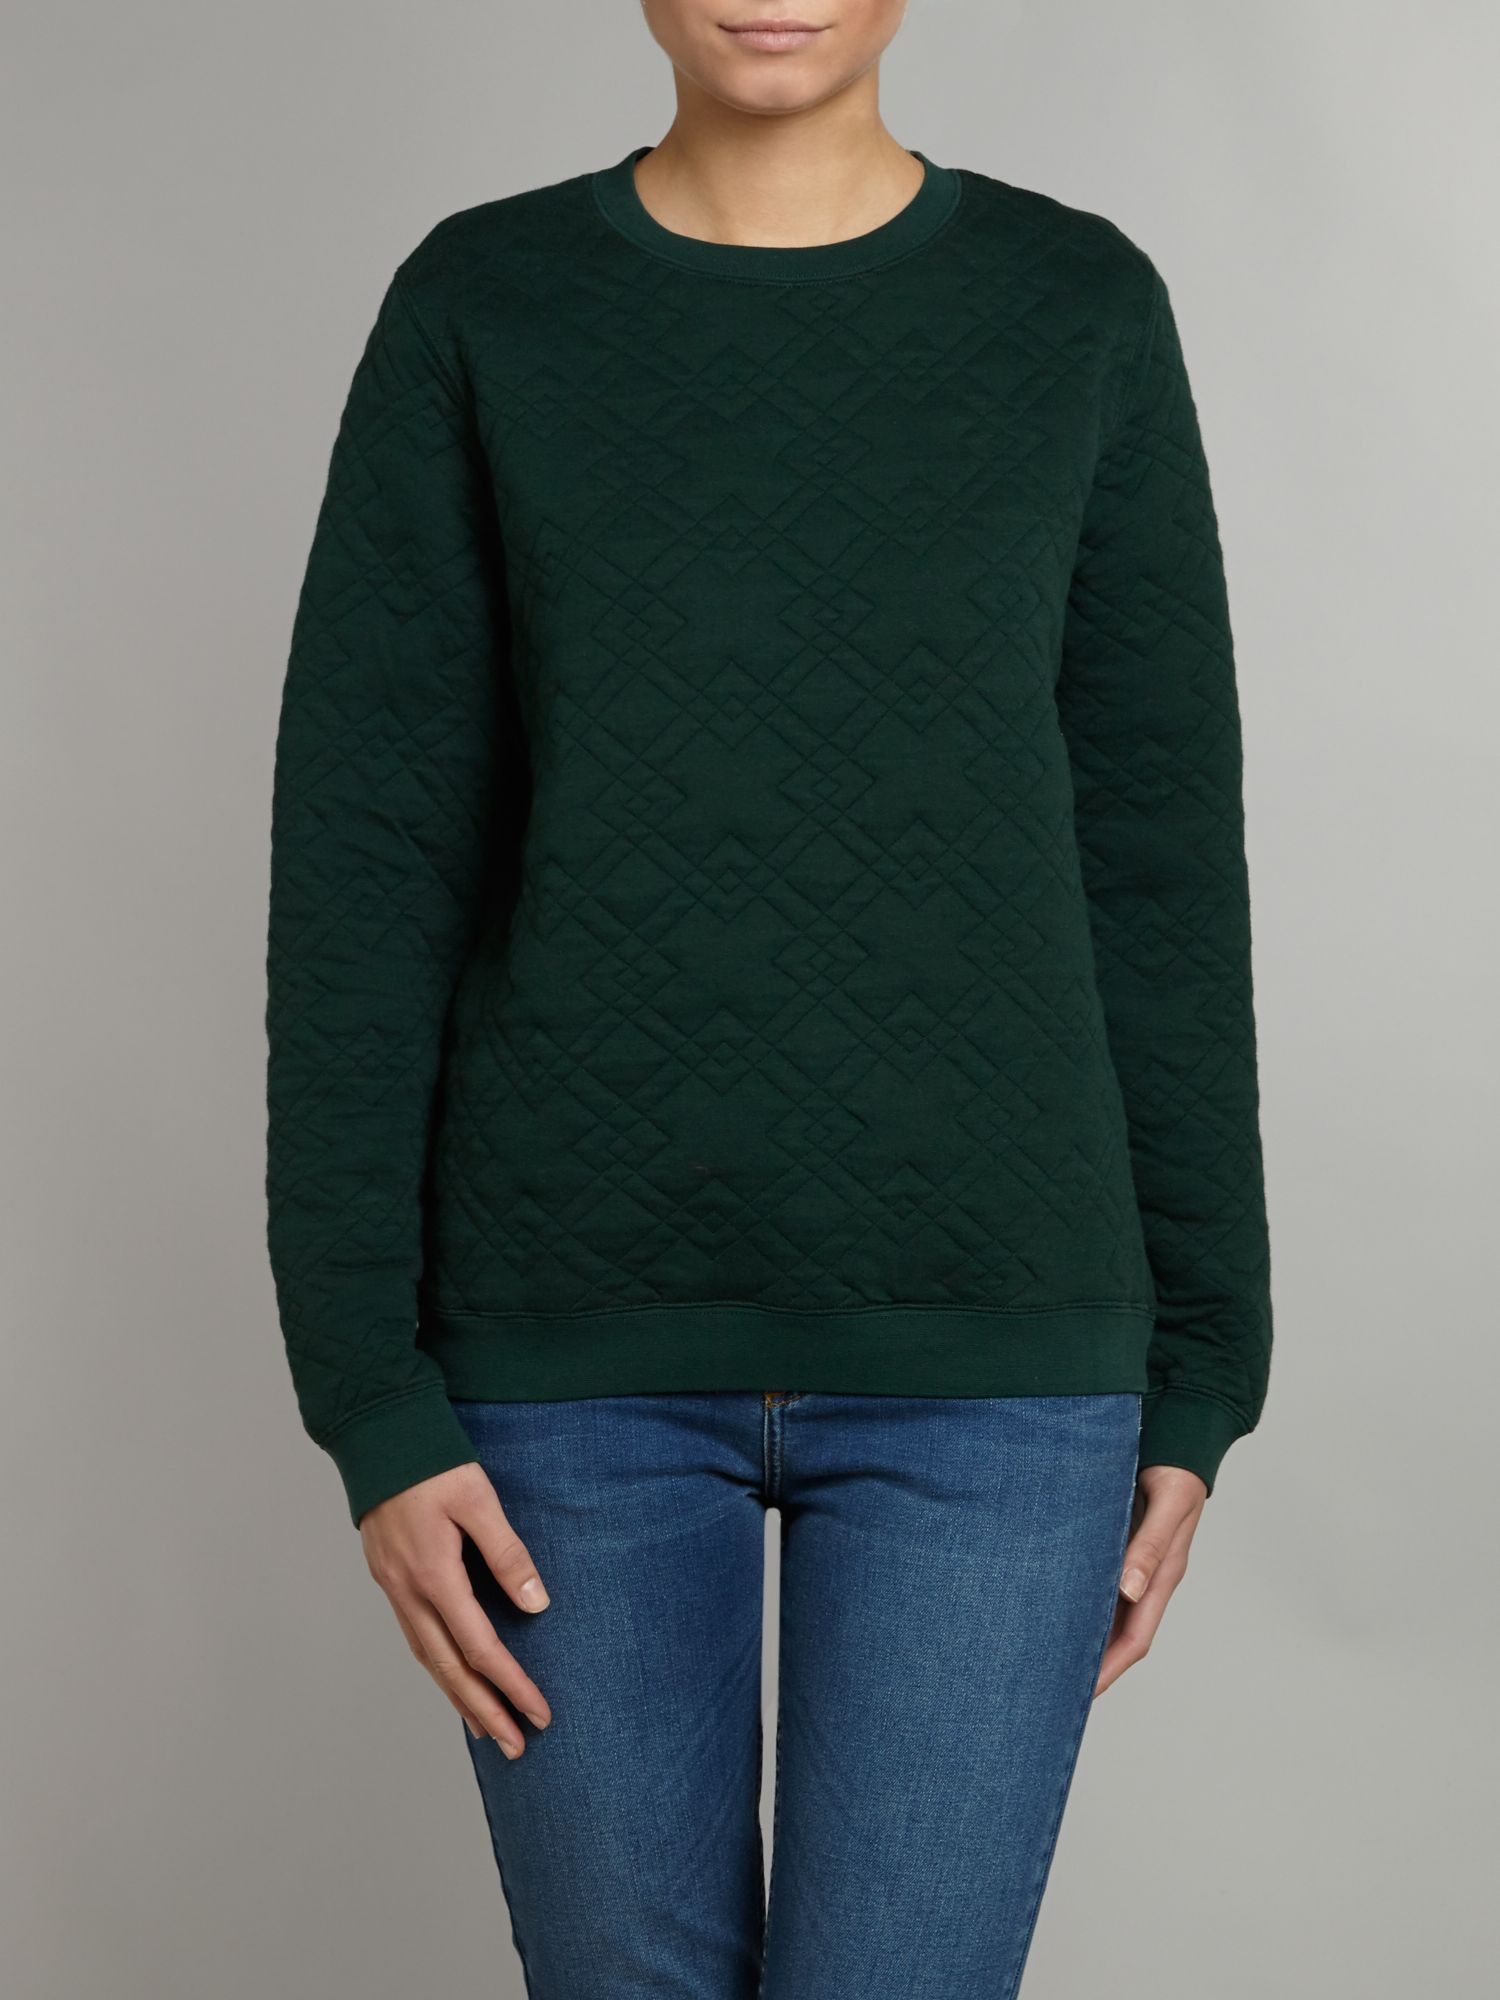 Cara cross quilted sweat